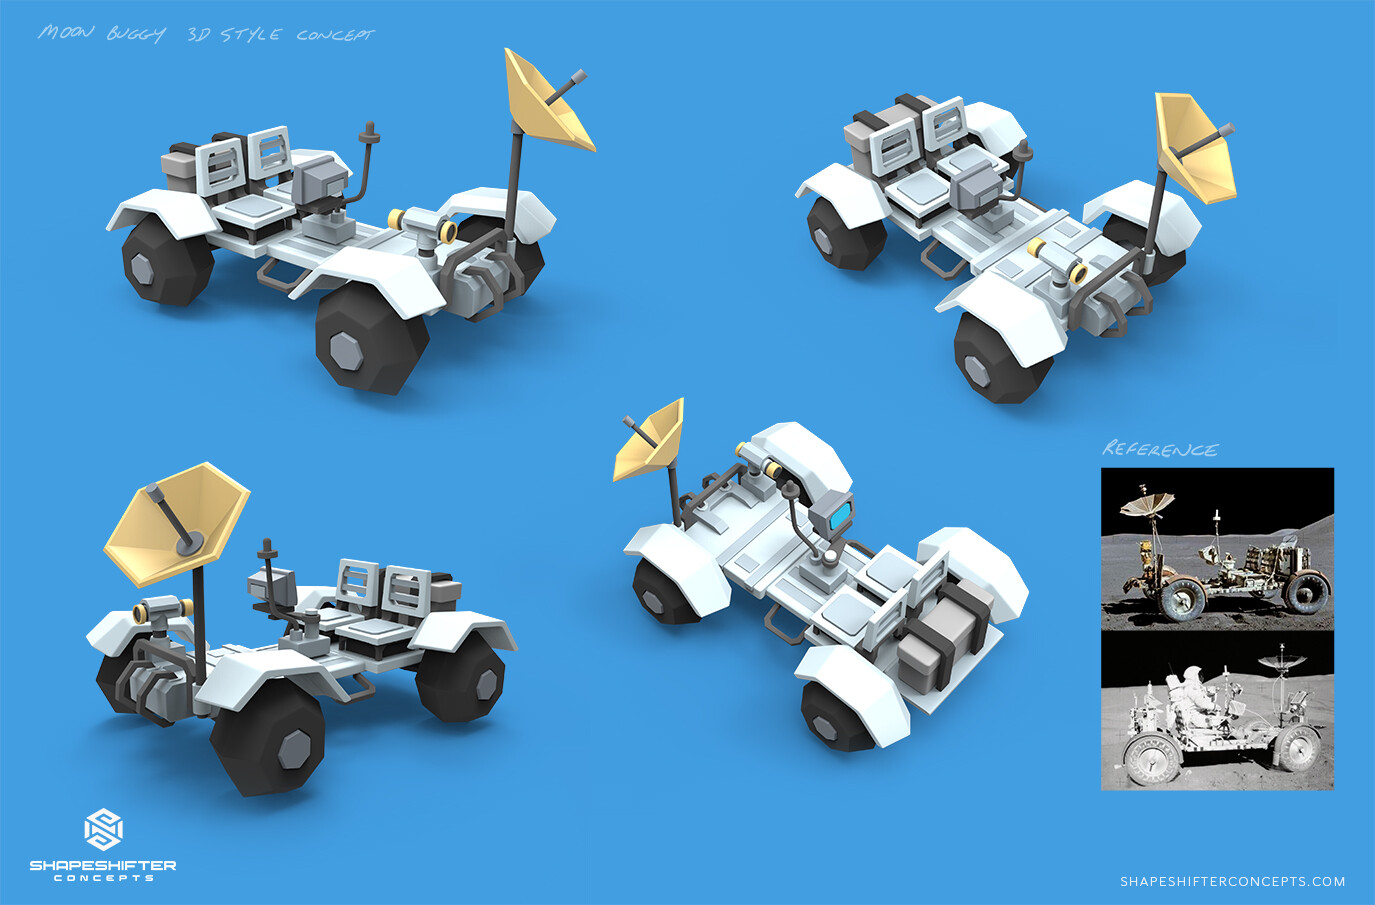 Shapeshifter concepts 200125 moon buggy 01